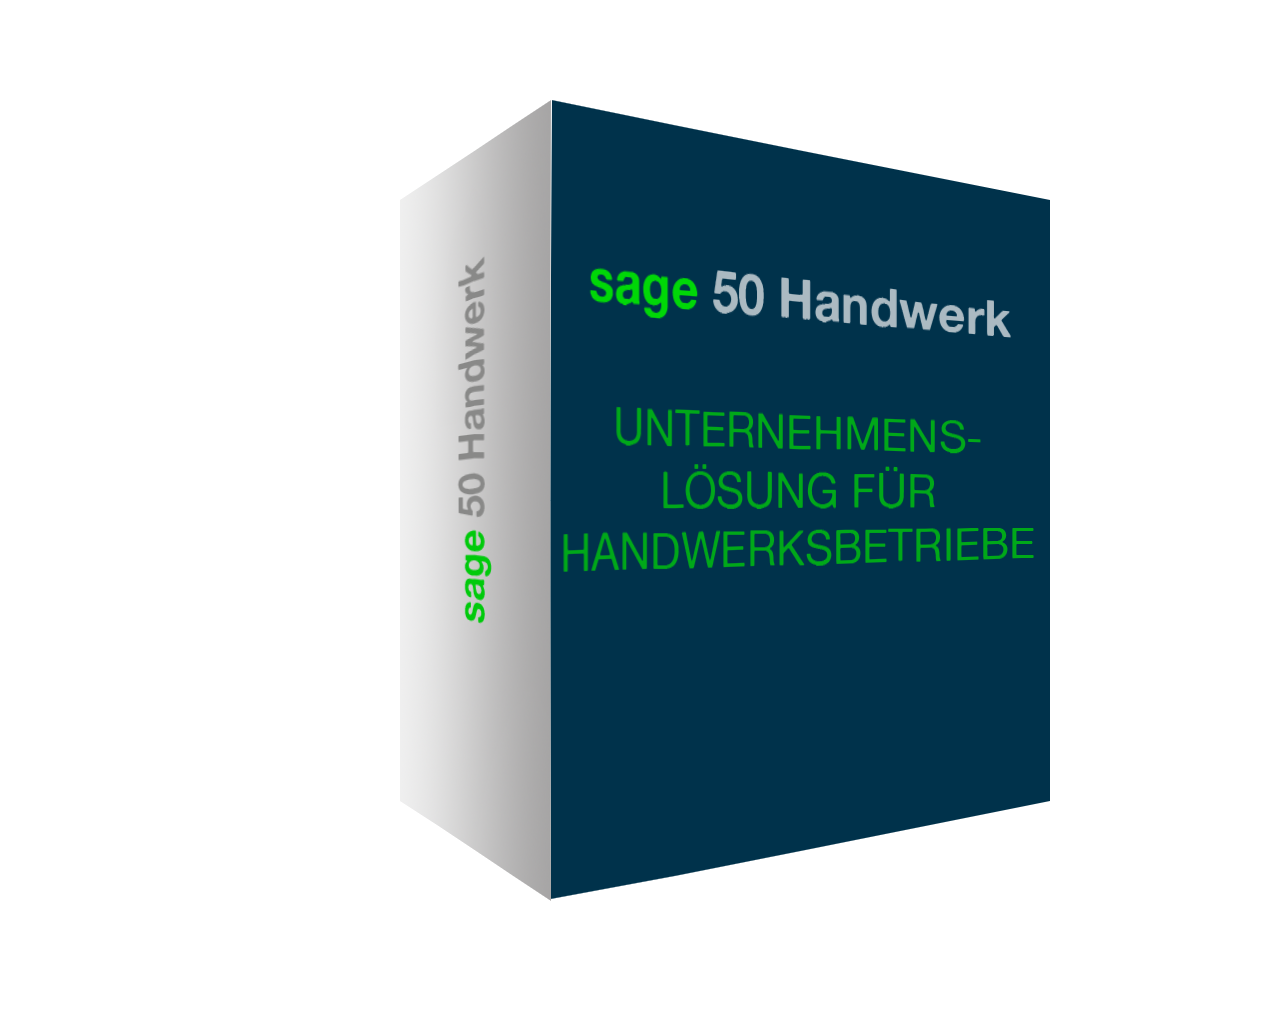 brainsolution Software AG - Sage 50 Handwerk